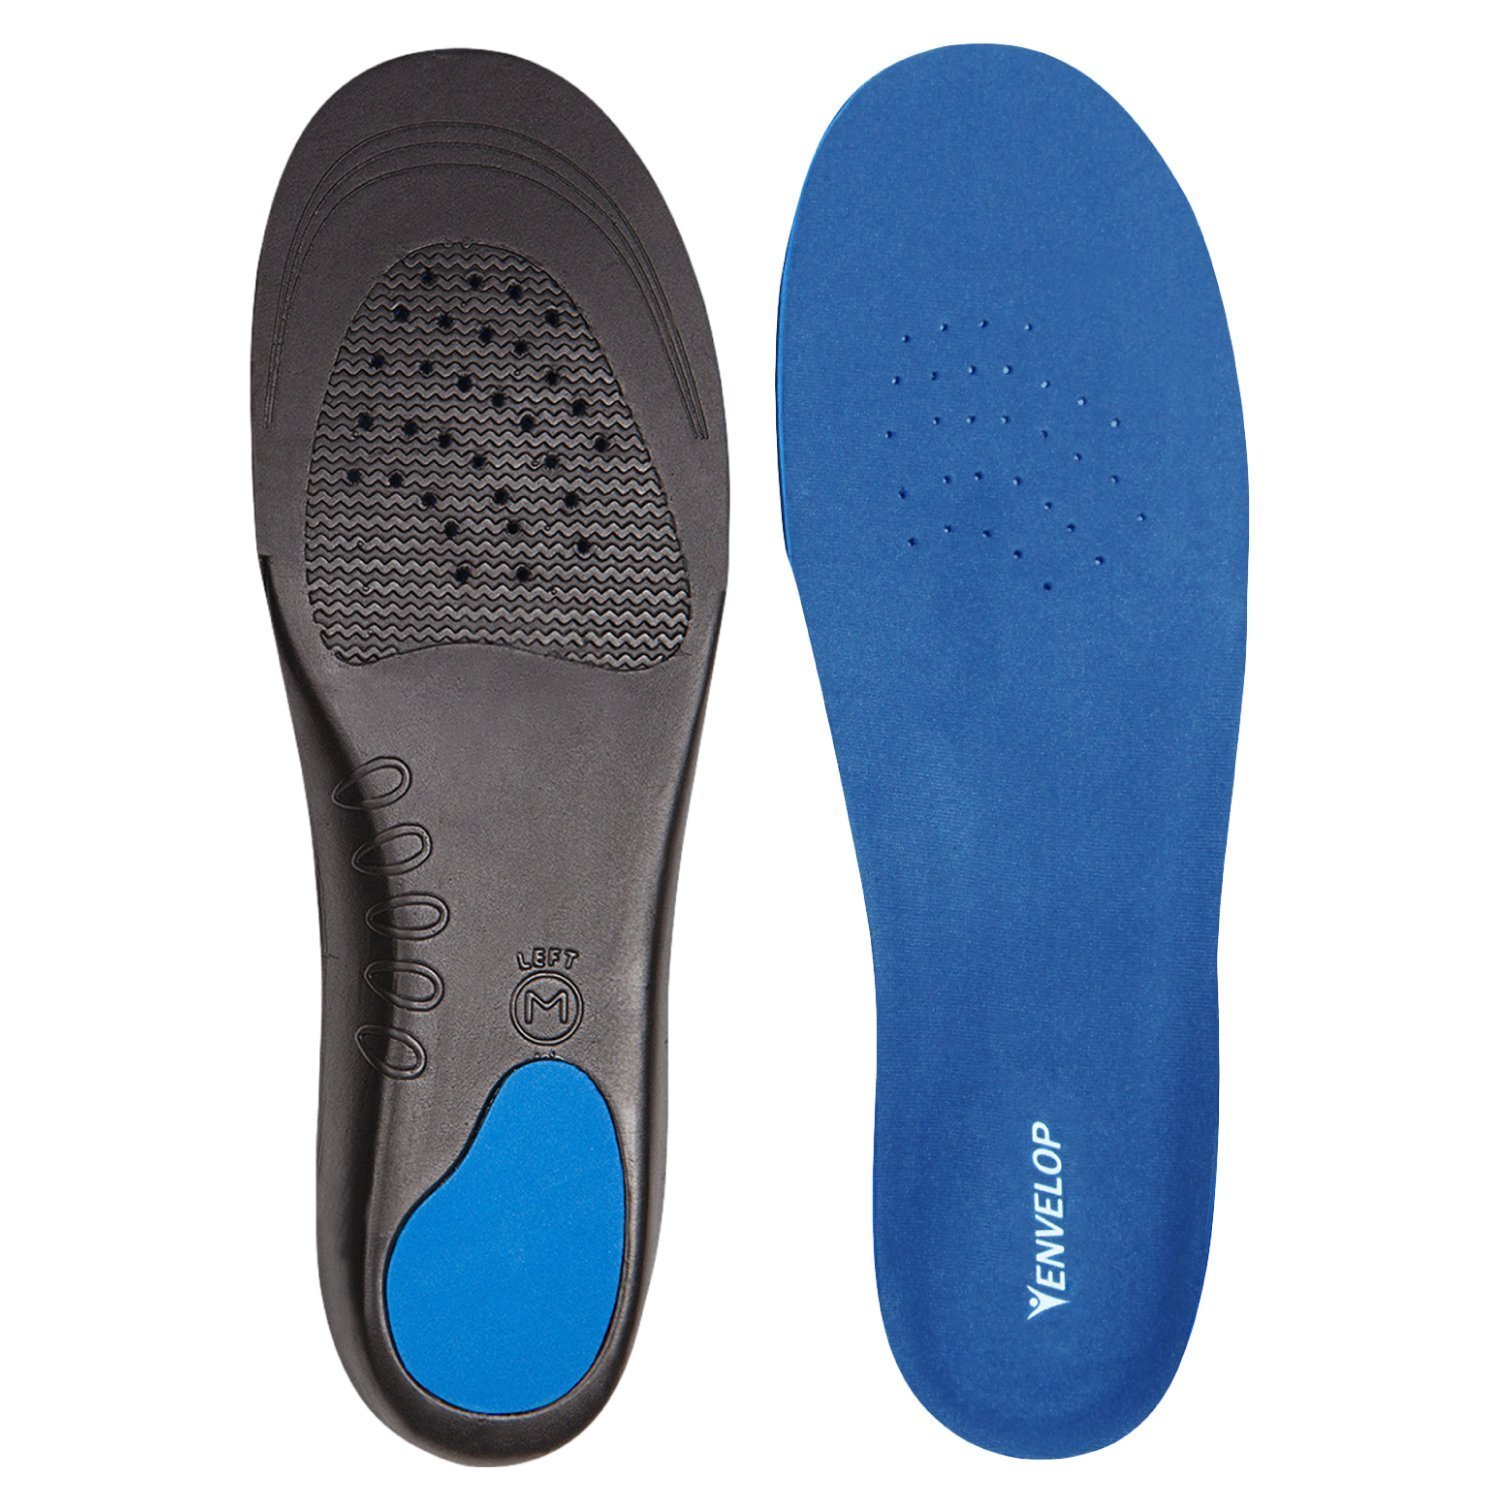 Best Insoles for Plantar Fasciitis - Full Length Orthotics by Envelop